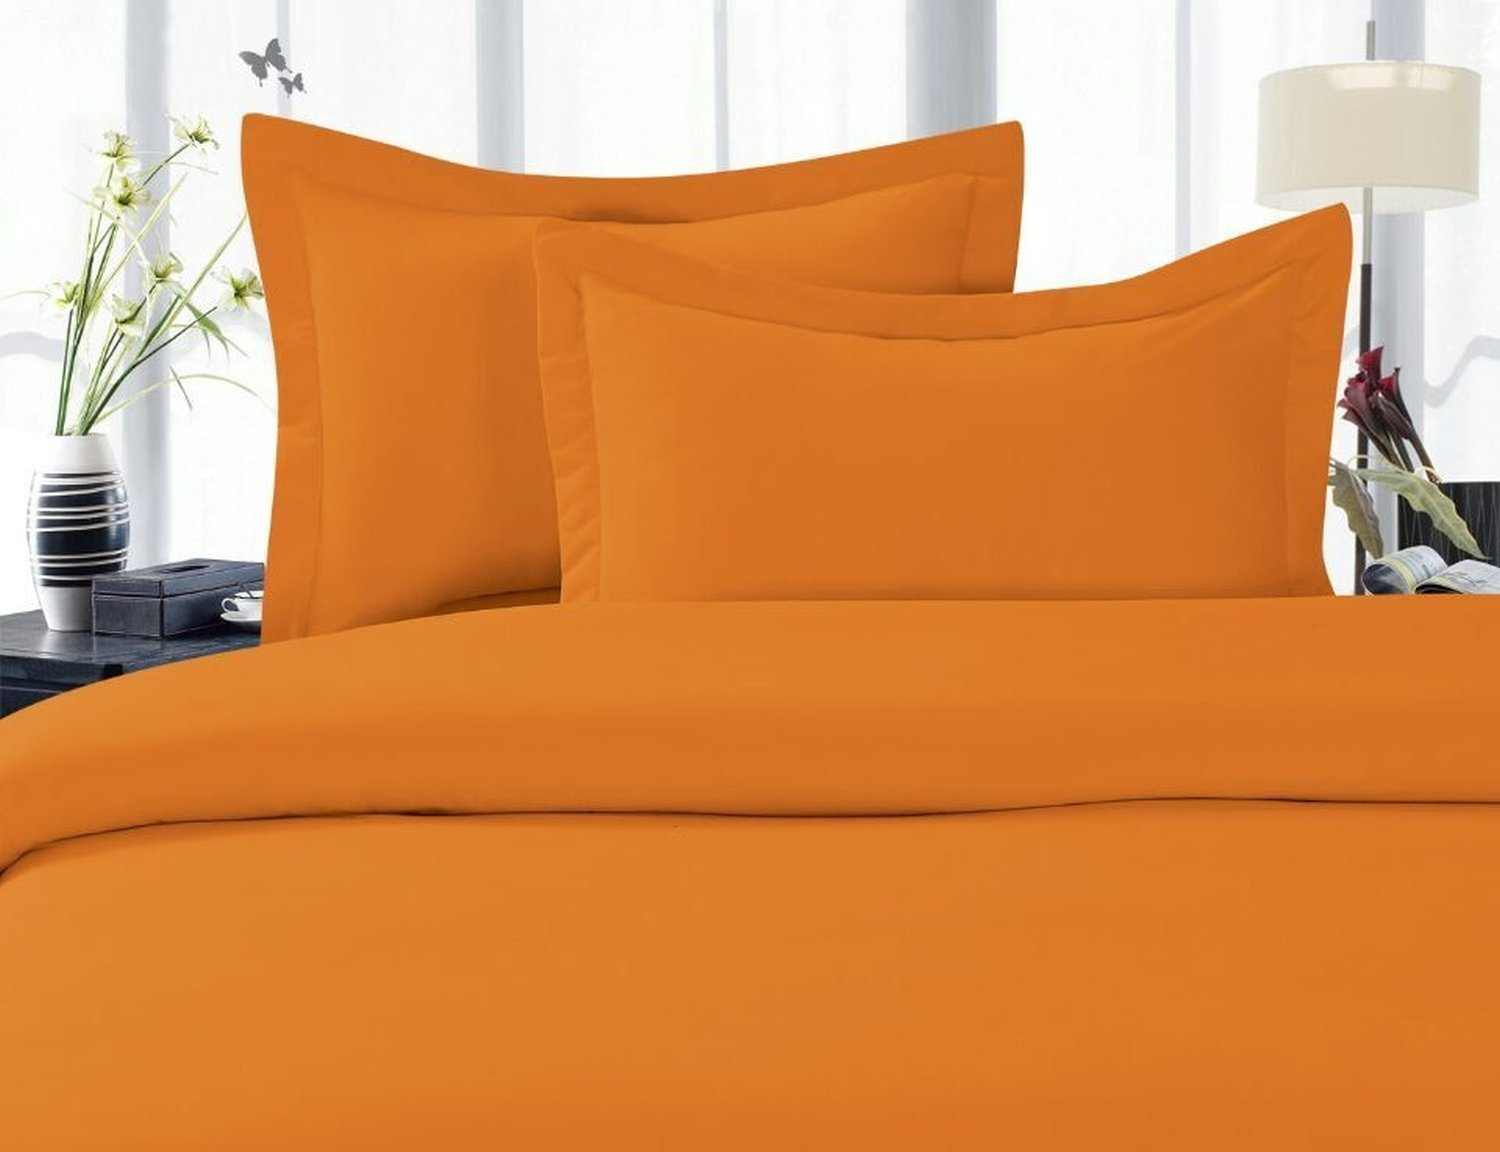 4-Piece Bed Sheet set, Deep Pocket, HypoAllergenic - King Orange